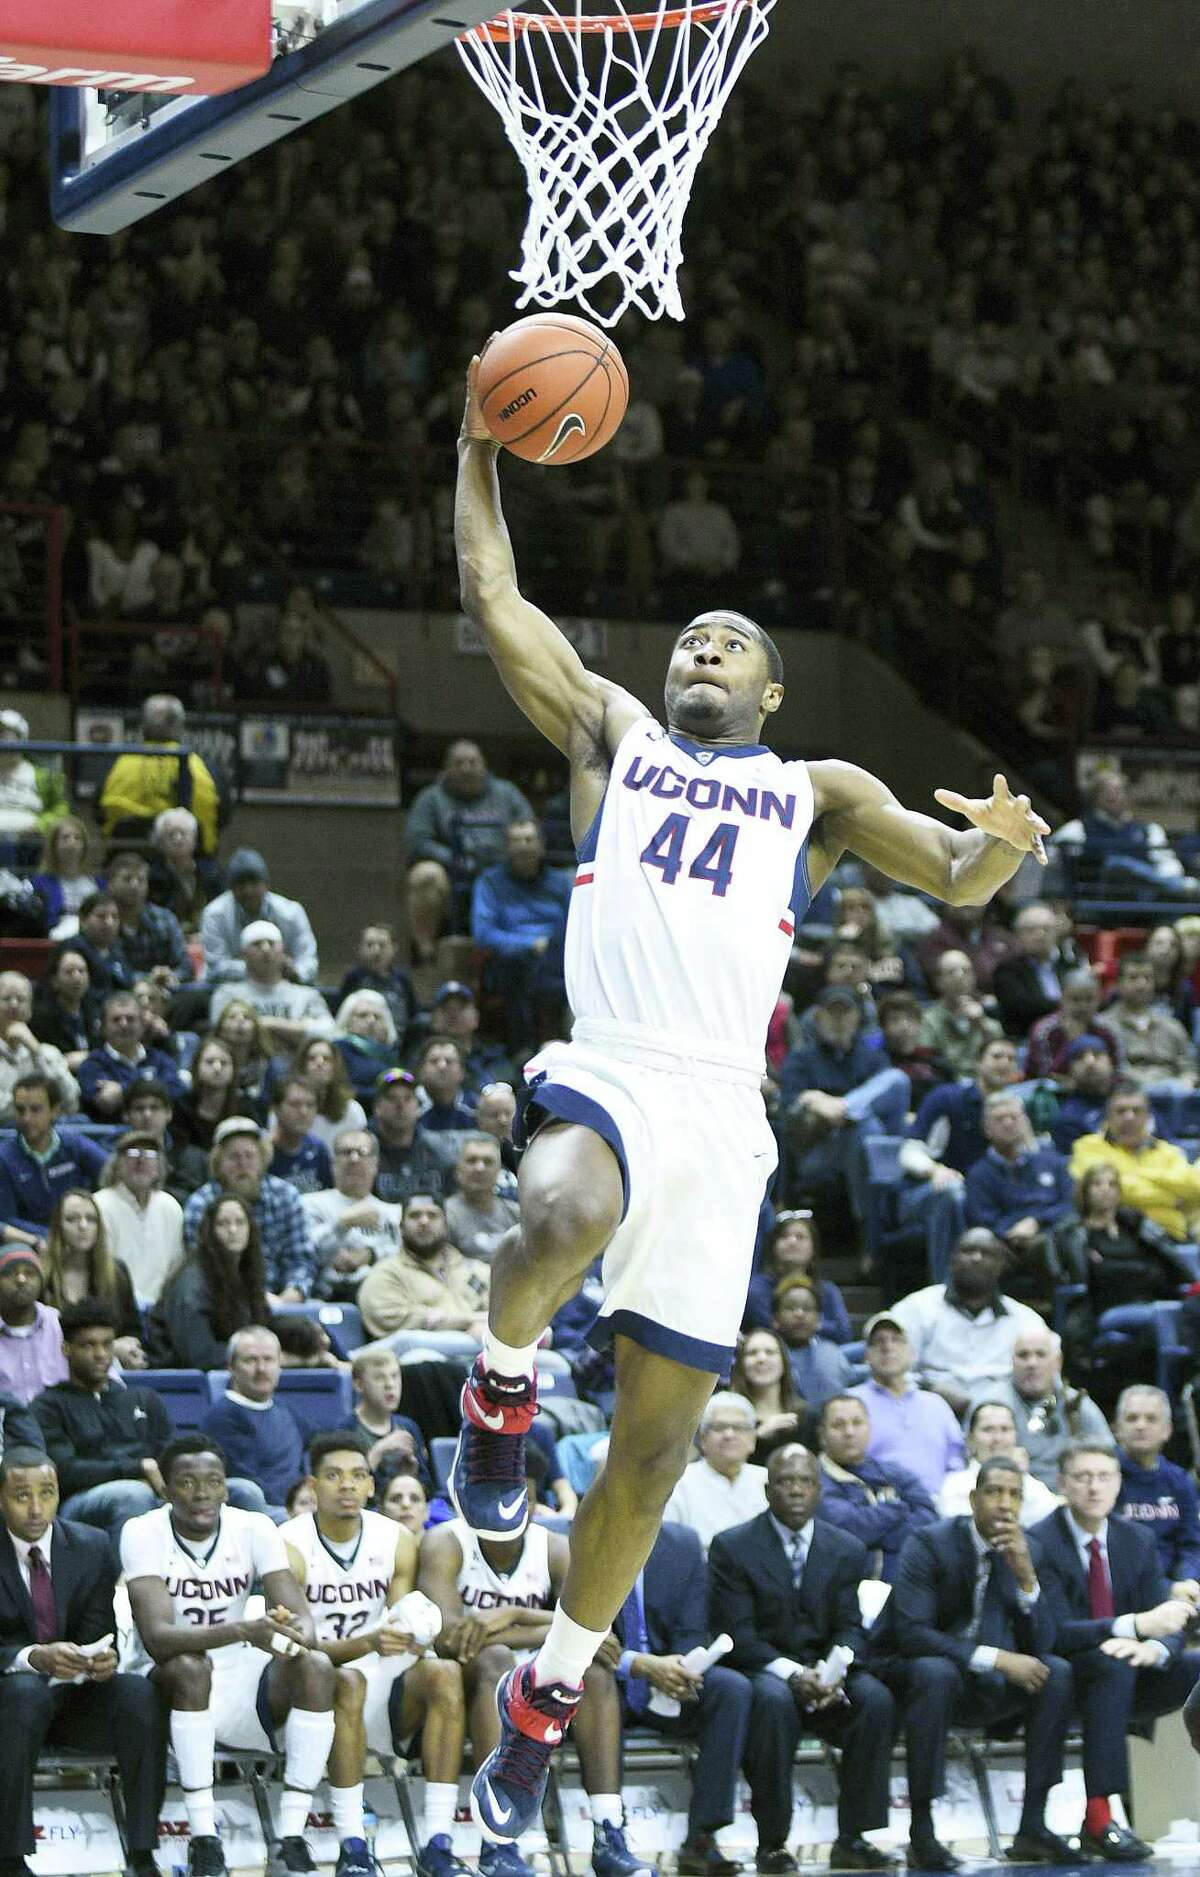 UConn's Rodney Purvis (44), who had a tough stretch during the Huskies collapse at Temple on Thursday, said he prefers to have a quick turn around and be able to play Tulsa today.